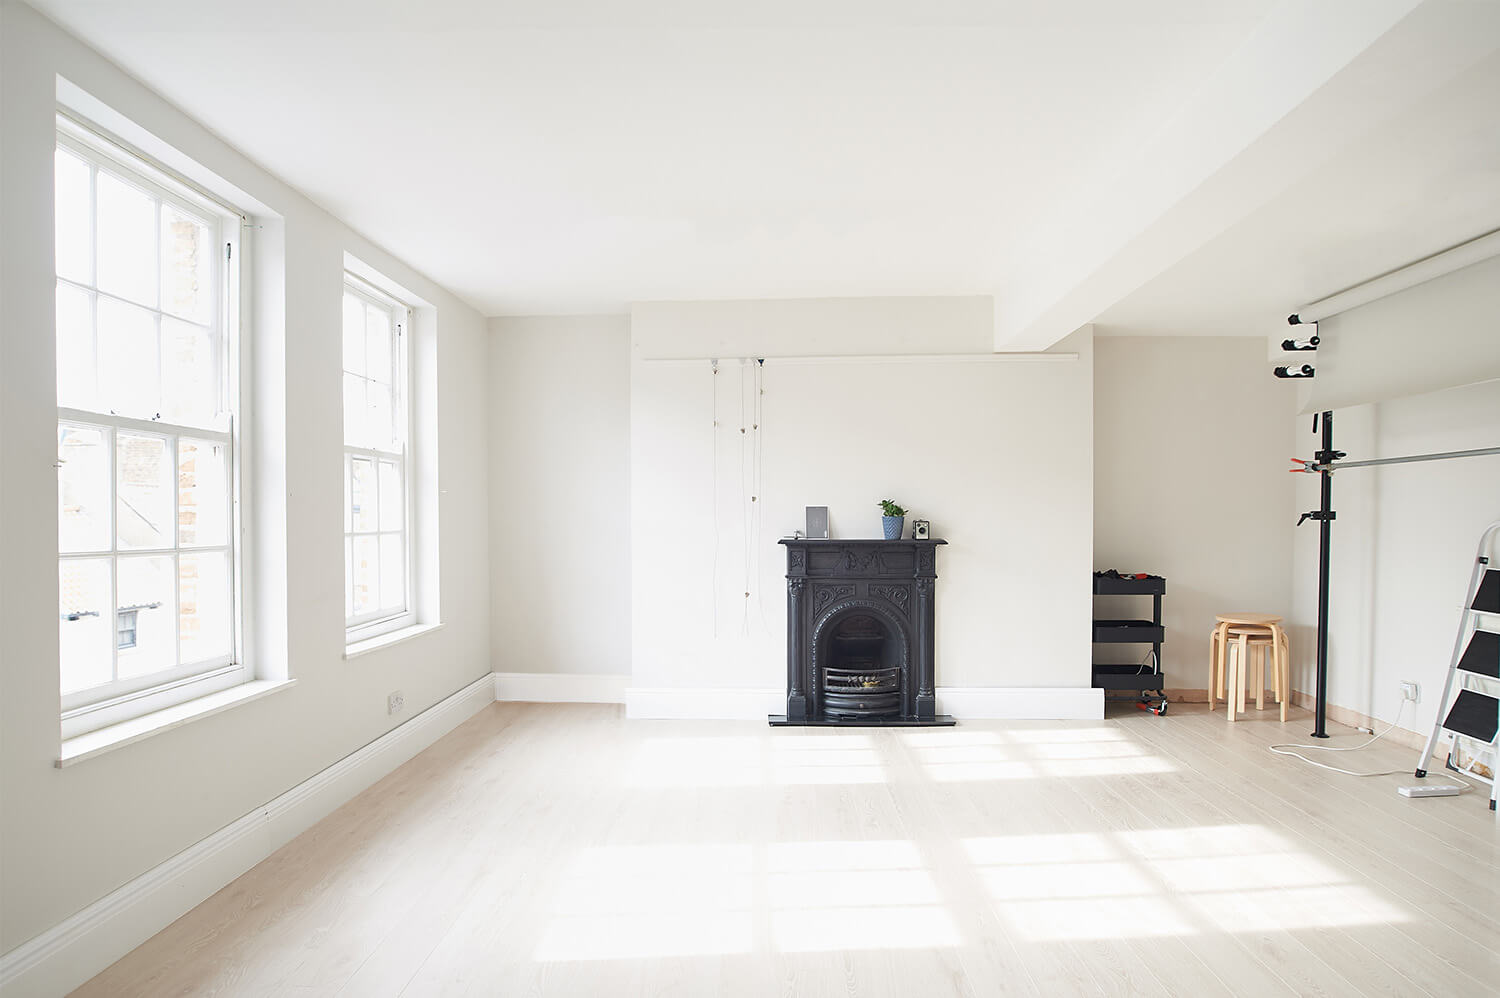 Product photography studio showing the fireplace, sash windows, background system